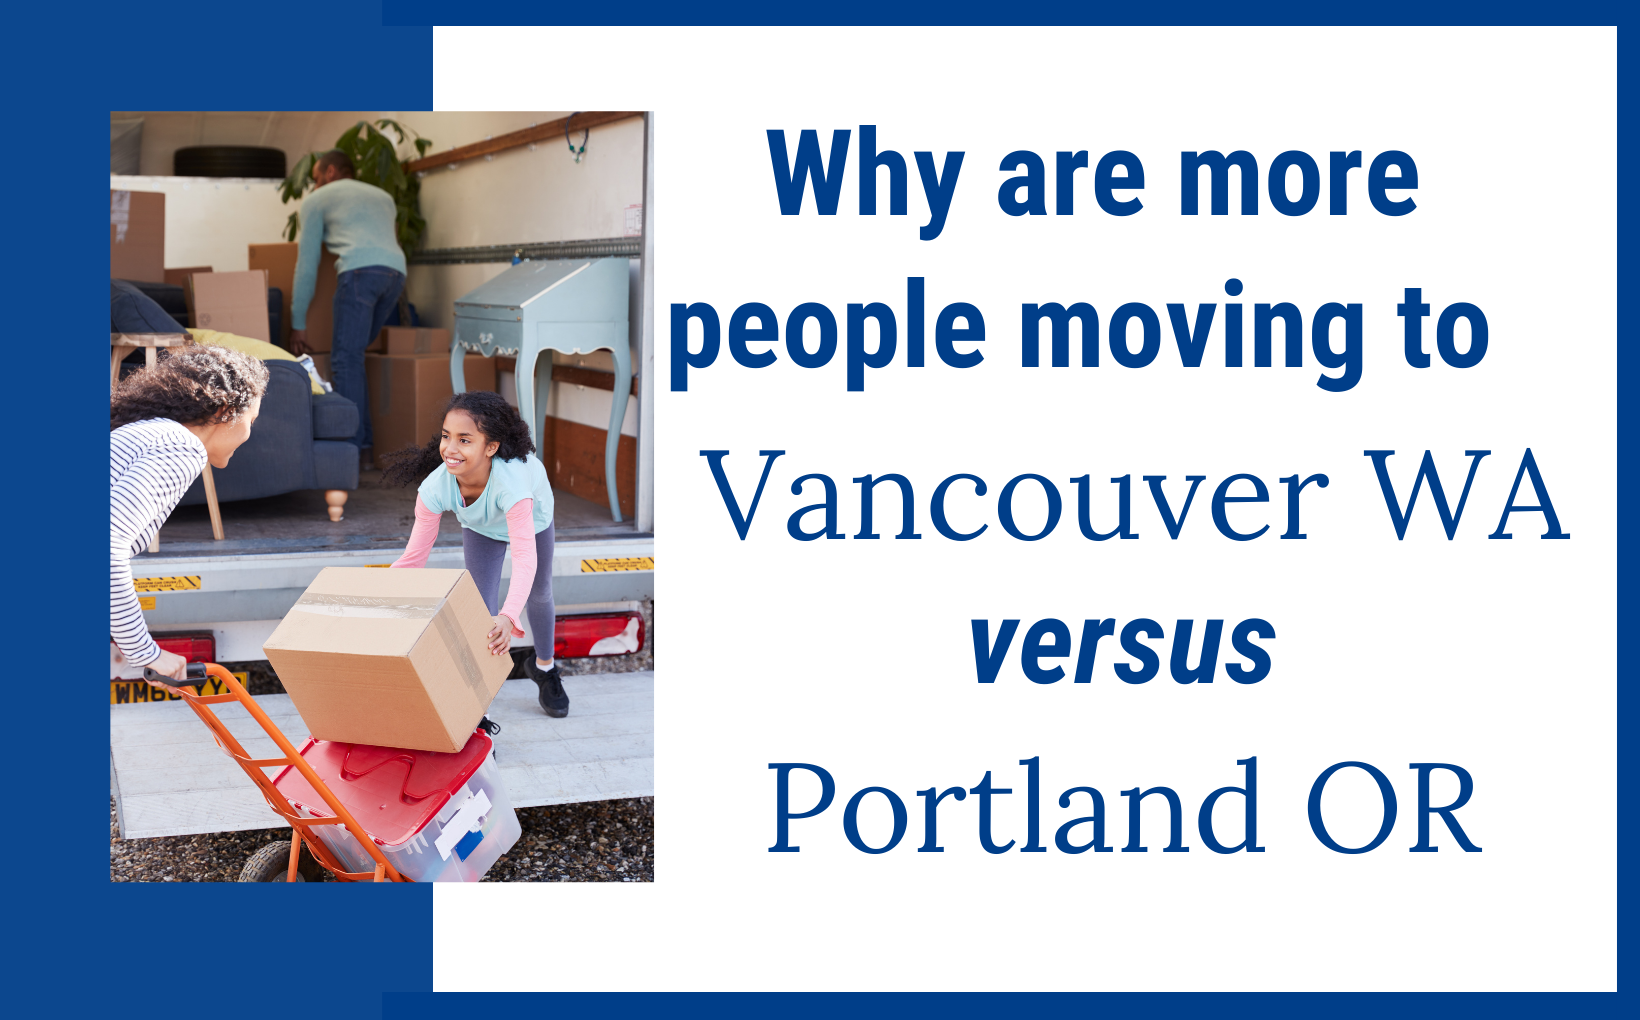 Why are more people moving to Vancouver Wa vs Portalnd Or feature image